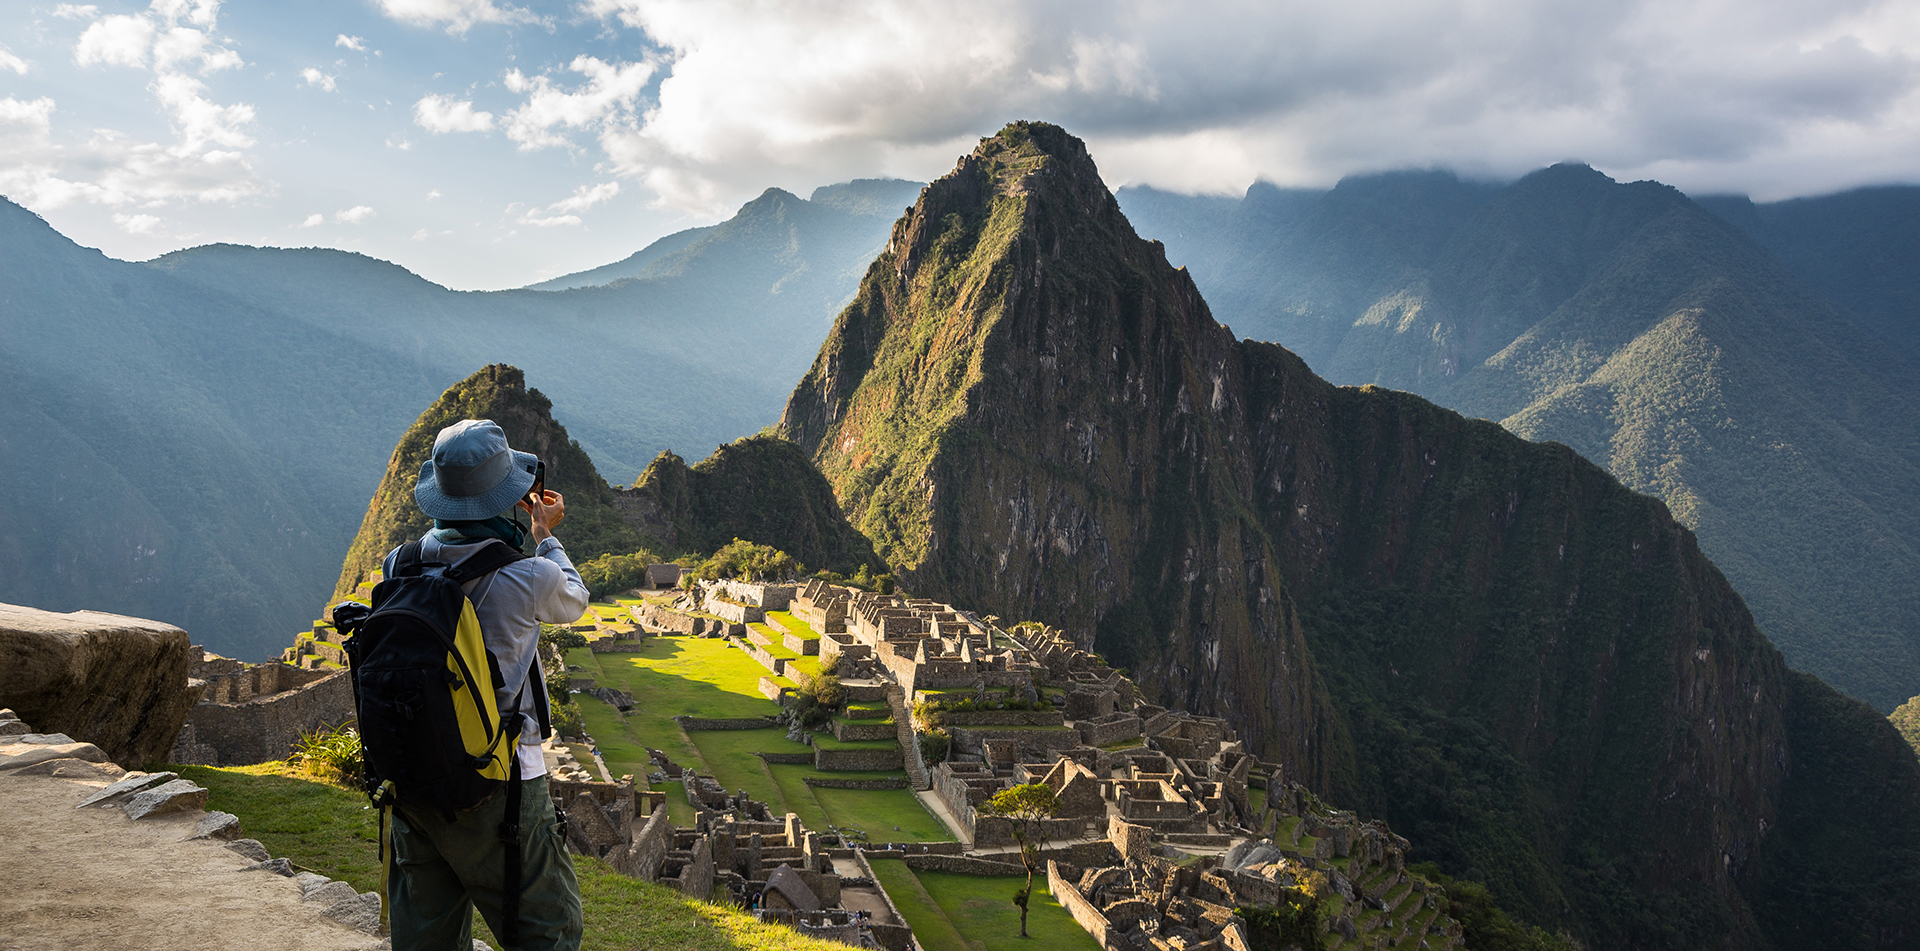 Traveler taking photo of Machu Picchu, Peru